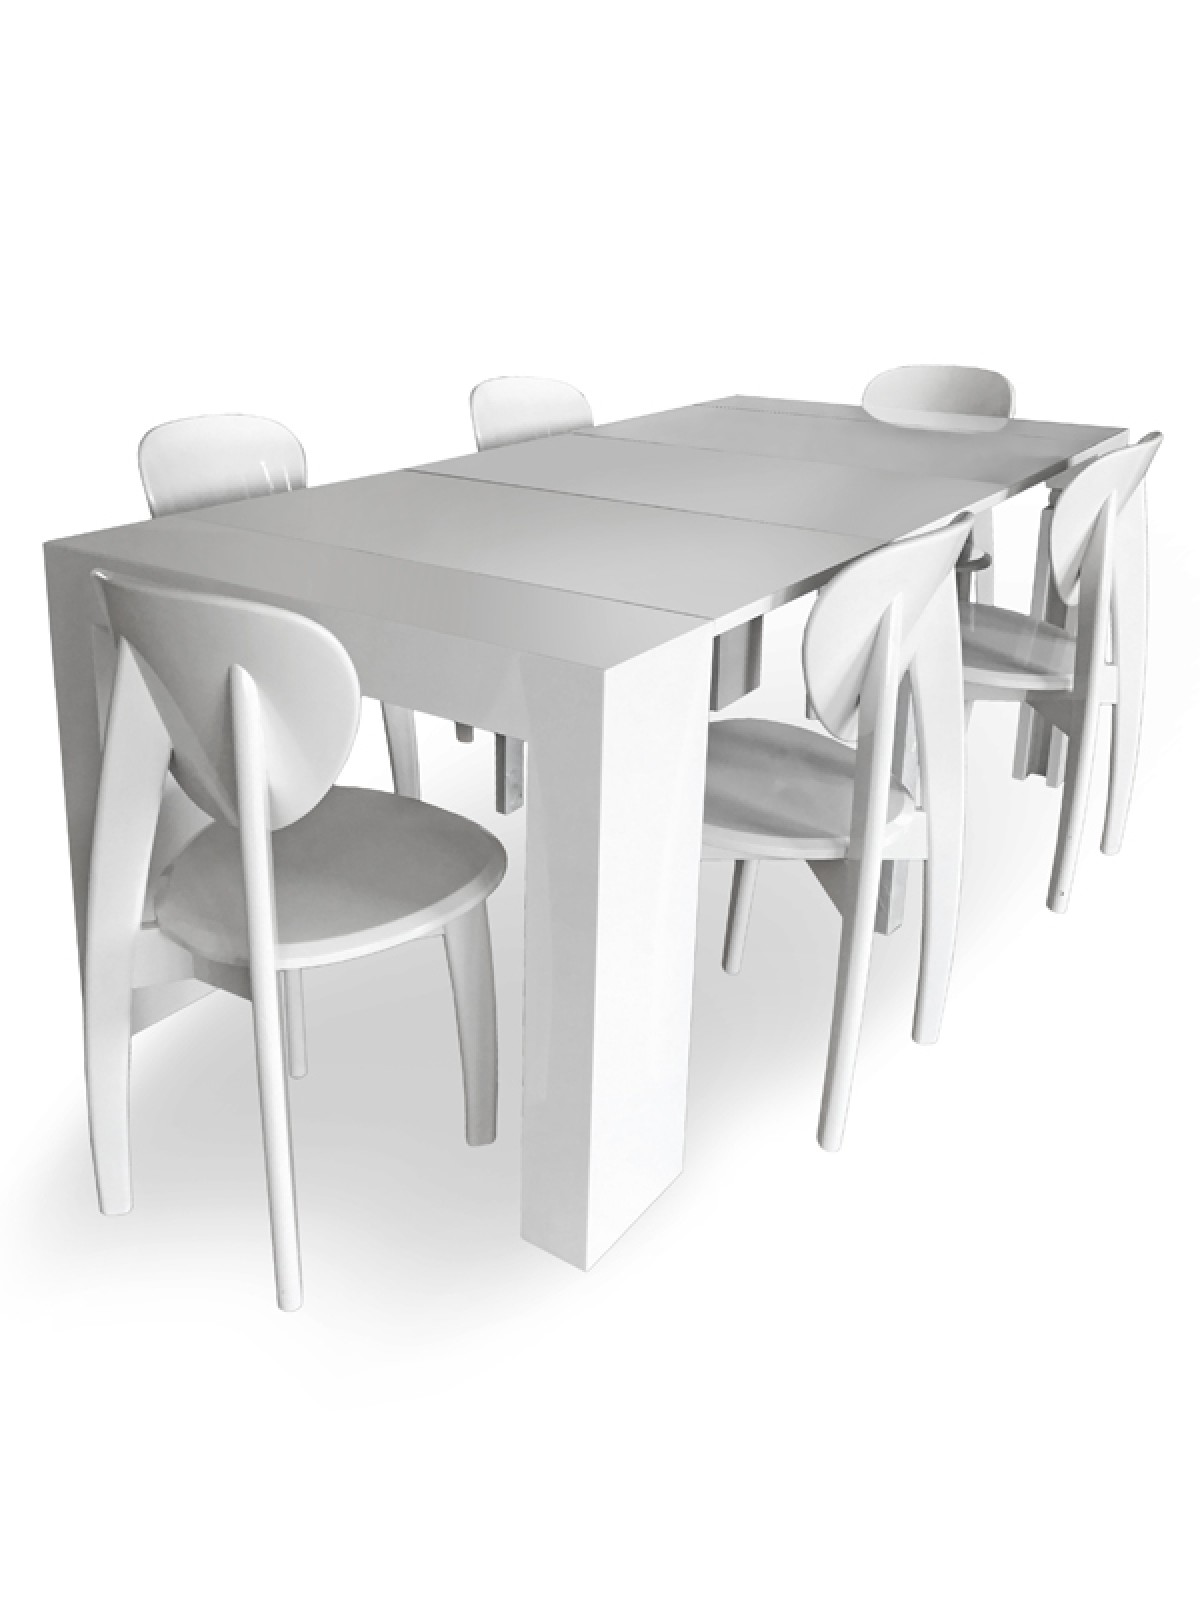 Versus Doreen Modern White Extendable Dining Table